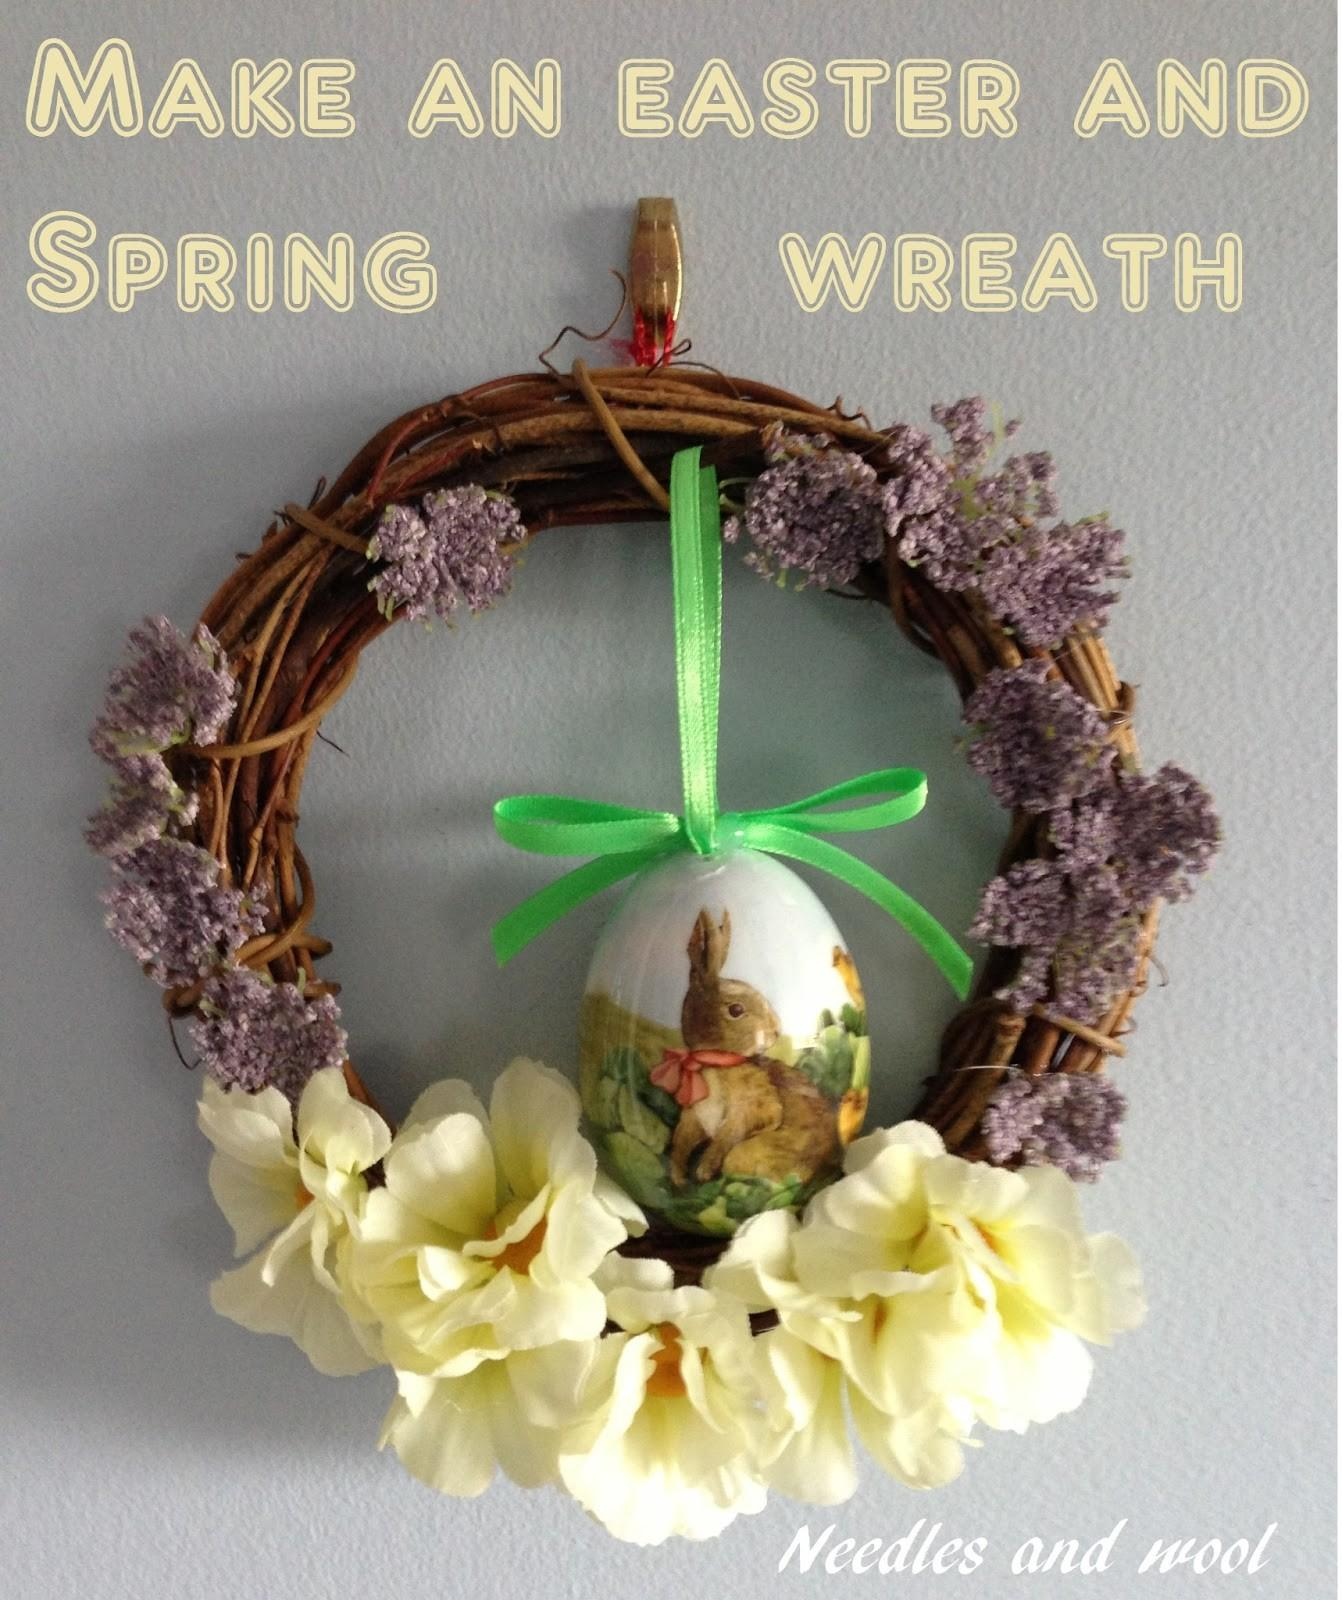 Needles Wool Diy Easter Spring Wreaths